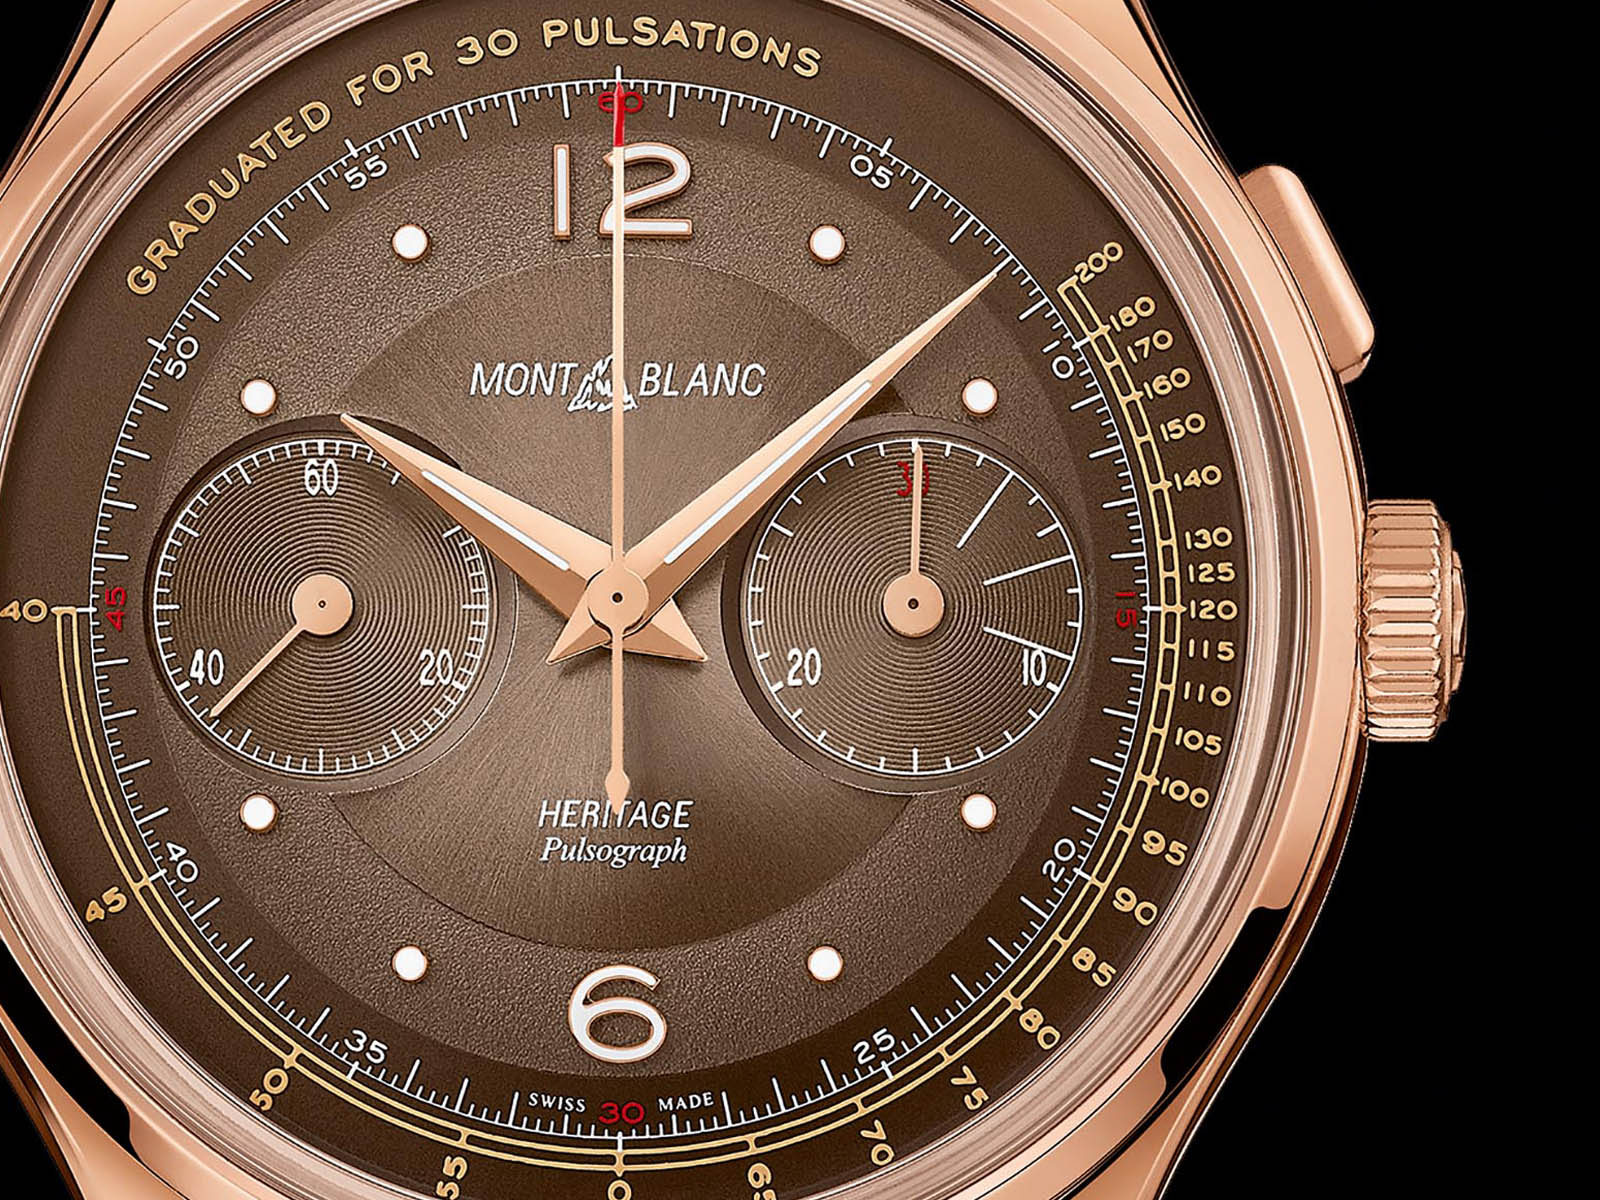 126095-montblanc-heritage-manufacture-pulsograph-limited-edition-rose-gold-2.jpg